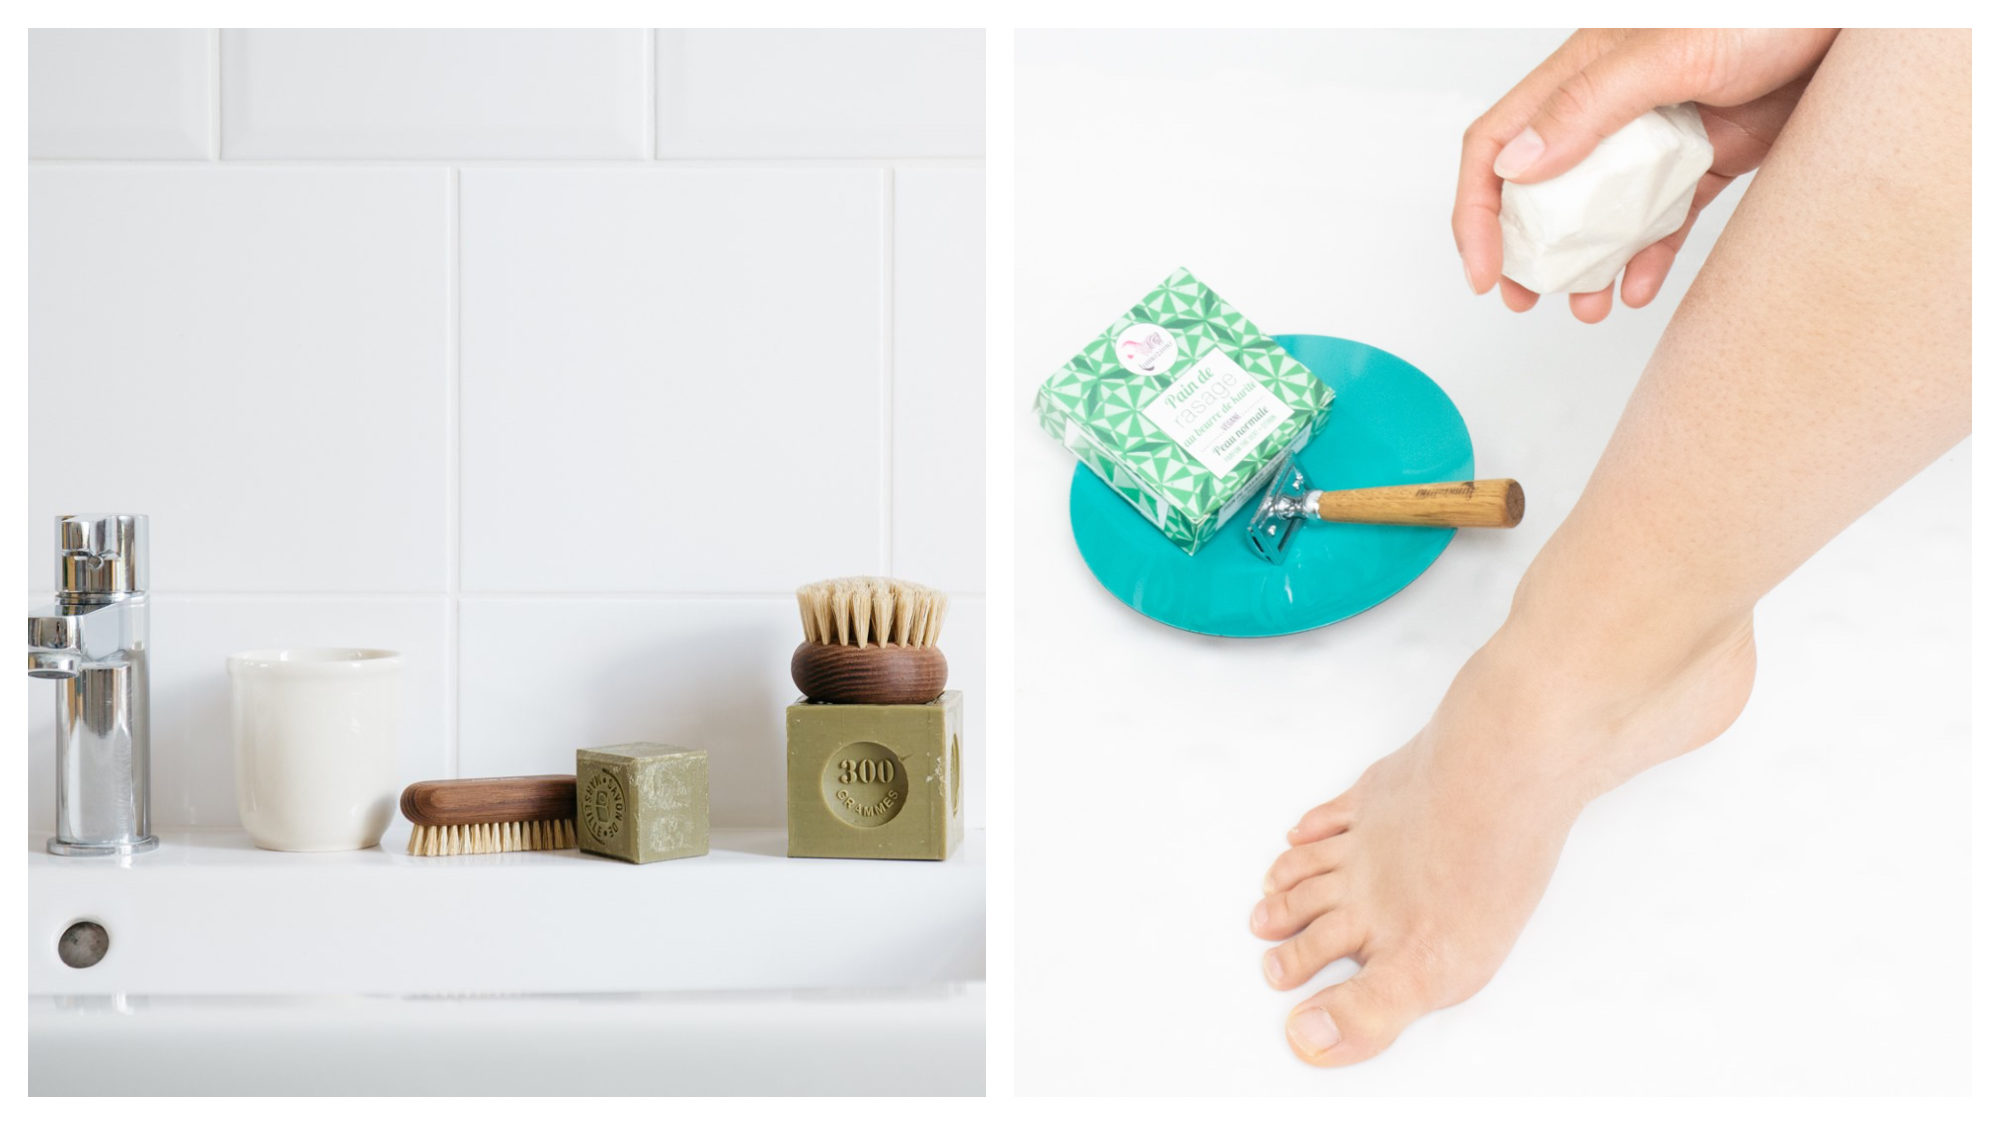 Olive Savon de Marseille block of soap and wooden bristle brushes in a white bathroom by Andrée Jardin (left). A woman's foot next to a Rasoir de Sureté razor with wooden handle (right).